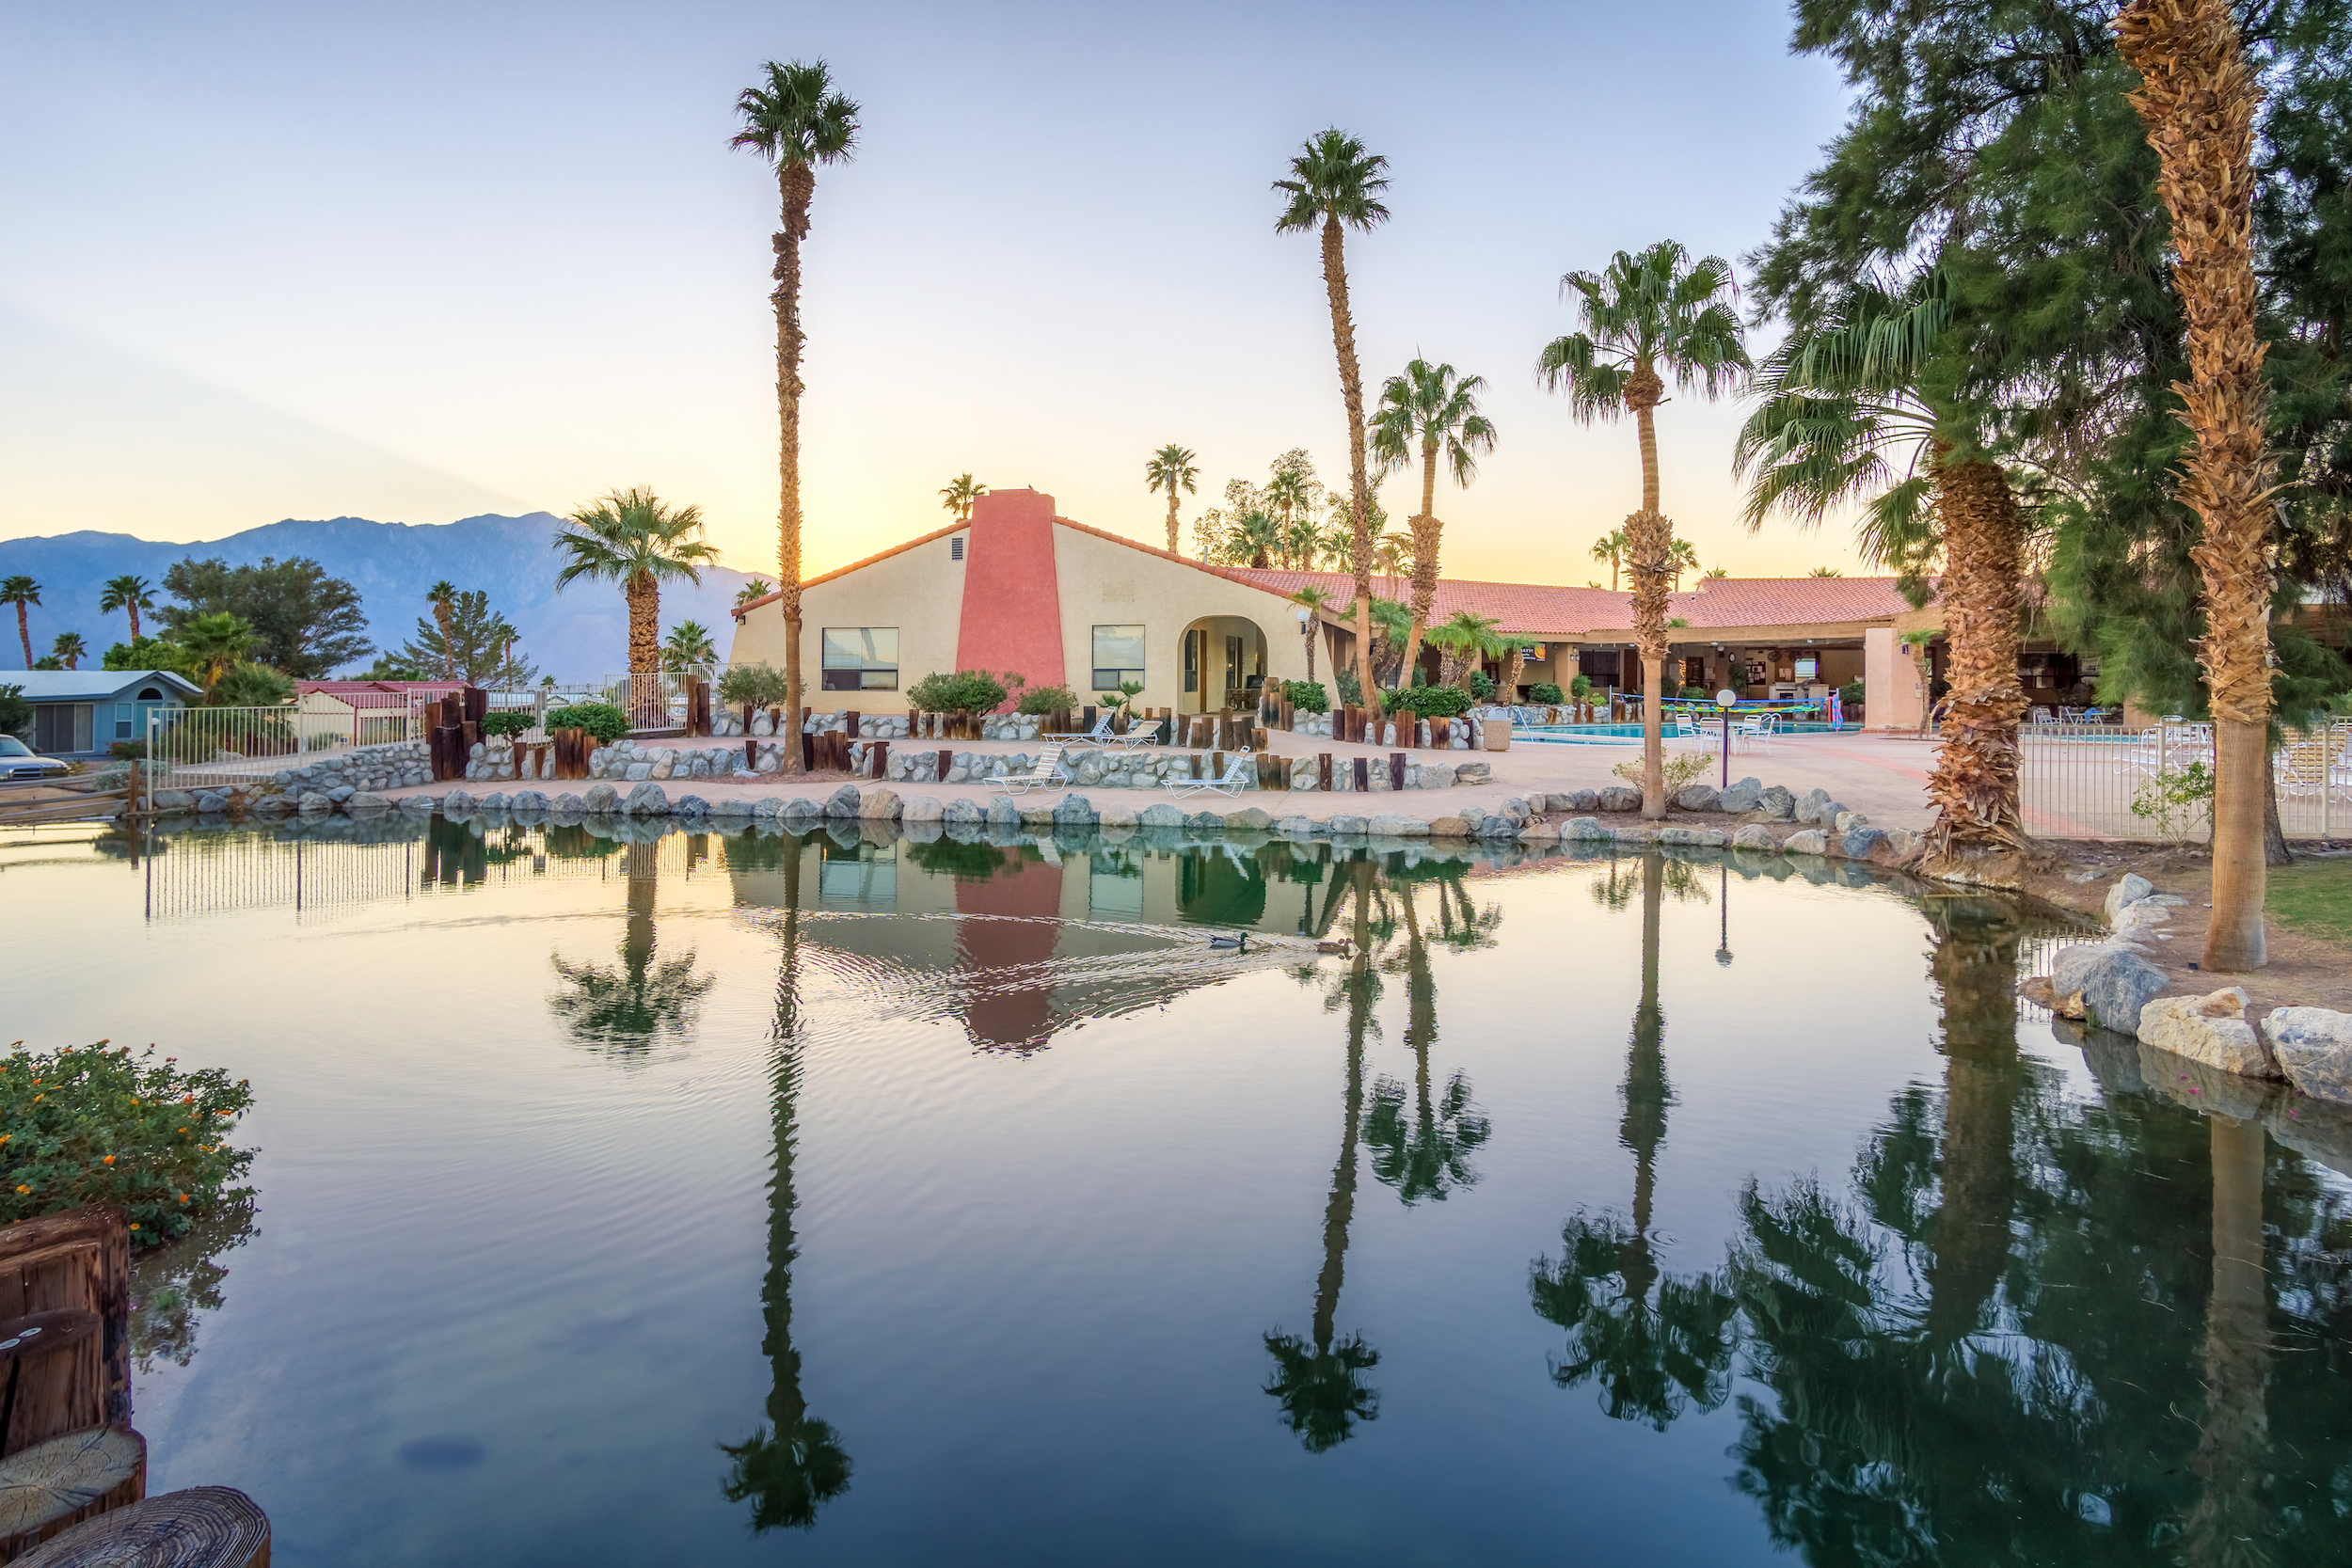 RESORT AMENITIES - Hot mineral pools, spas, and showersLarge clubhousePickleball and tennis courtsGolf course, driving range, and putting greenFitness roomDog parksLibraryGame roomLaundry facilities